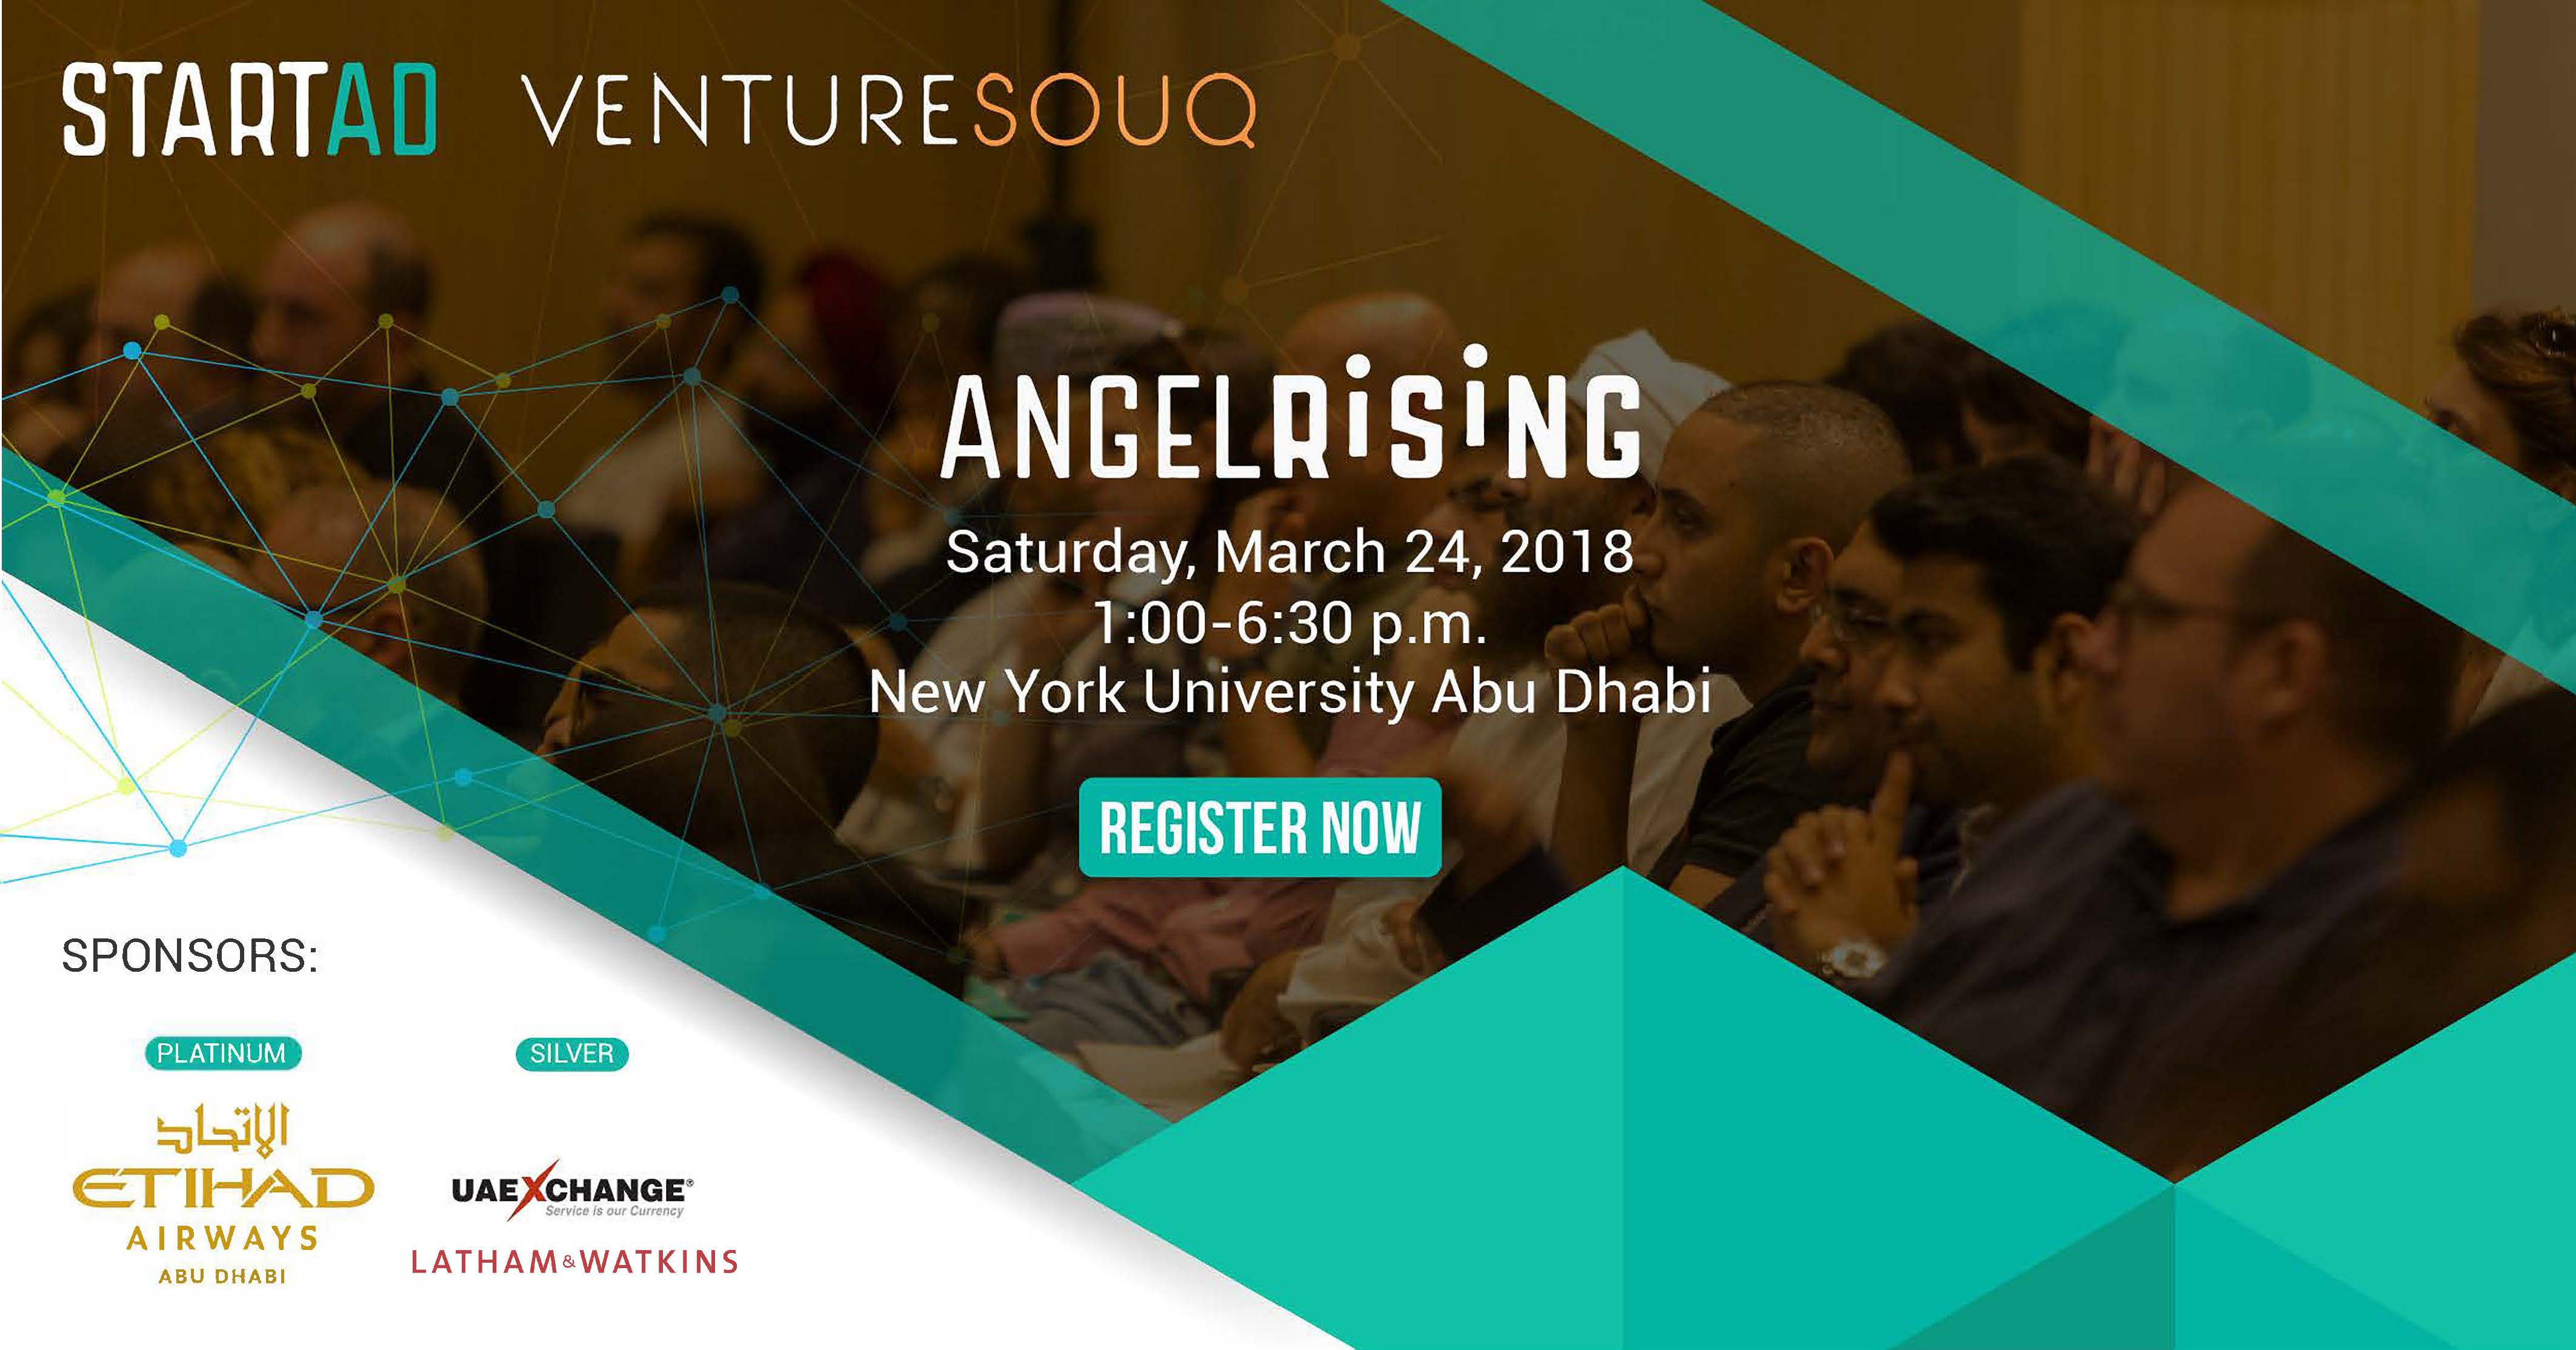 Angel Rising seeks to empower local angel investors and strengthen foundation for entrepreneurial ecosystem in the UAE